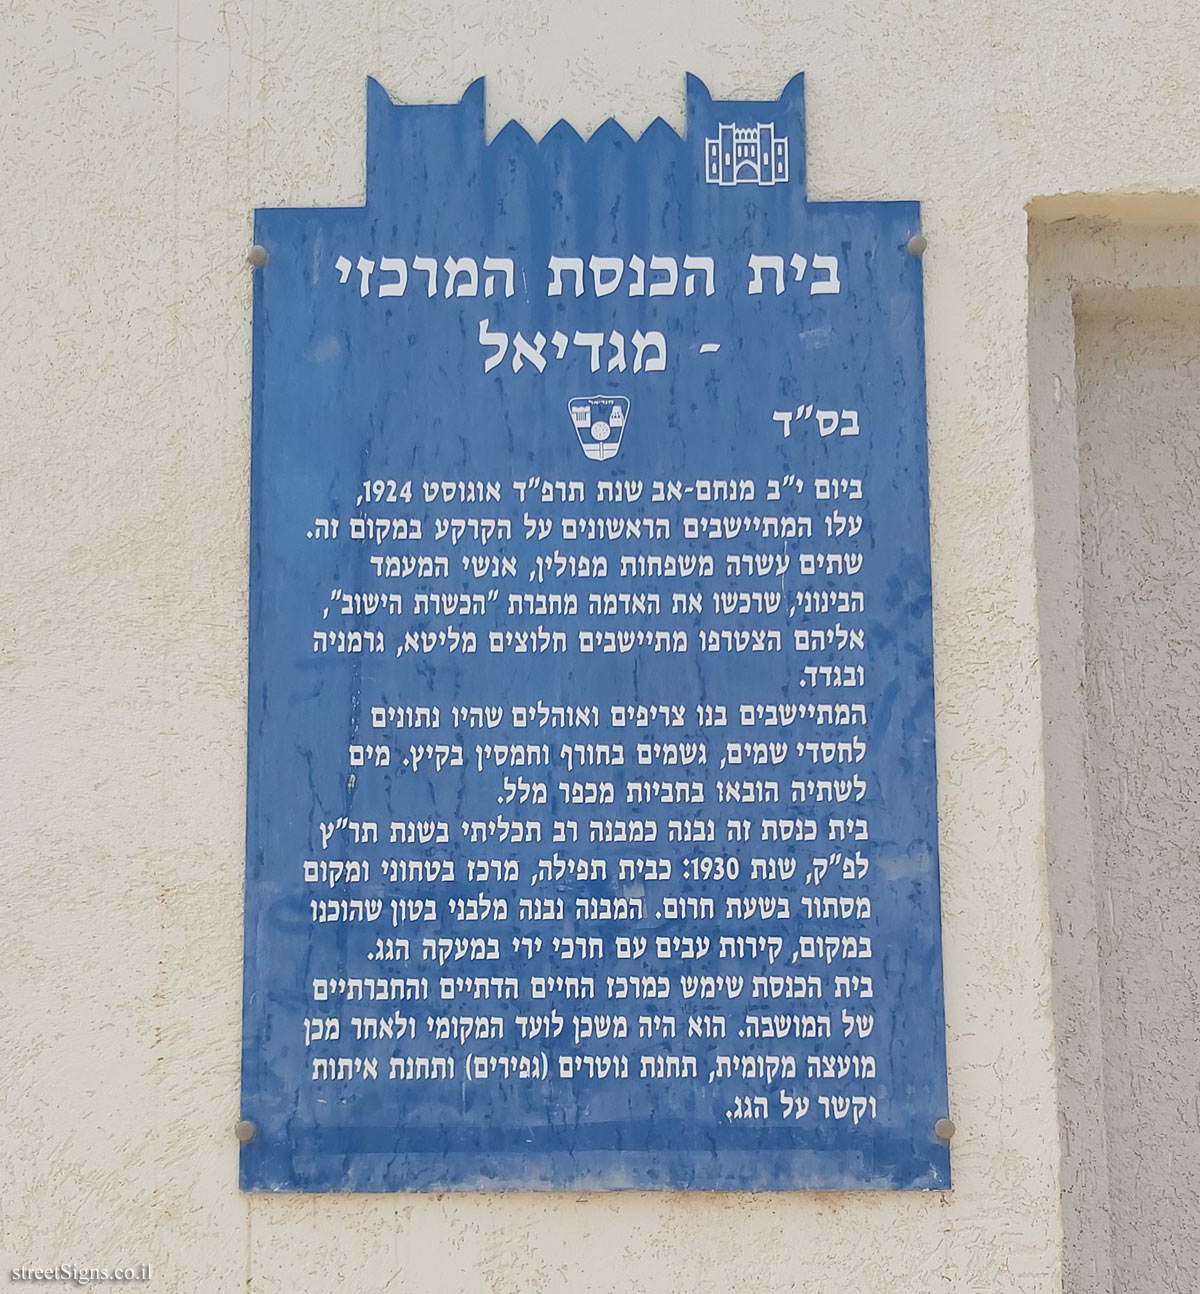 Hod Hasharon - Heritage Sites in Israel - The Central Synagogue - Magdiel